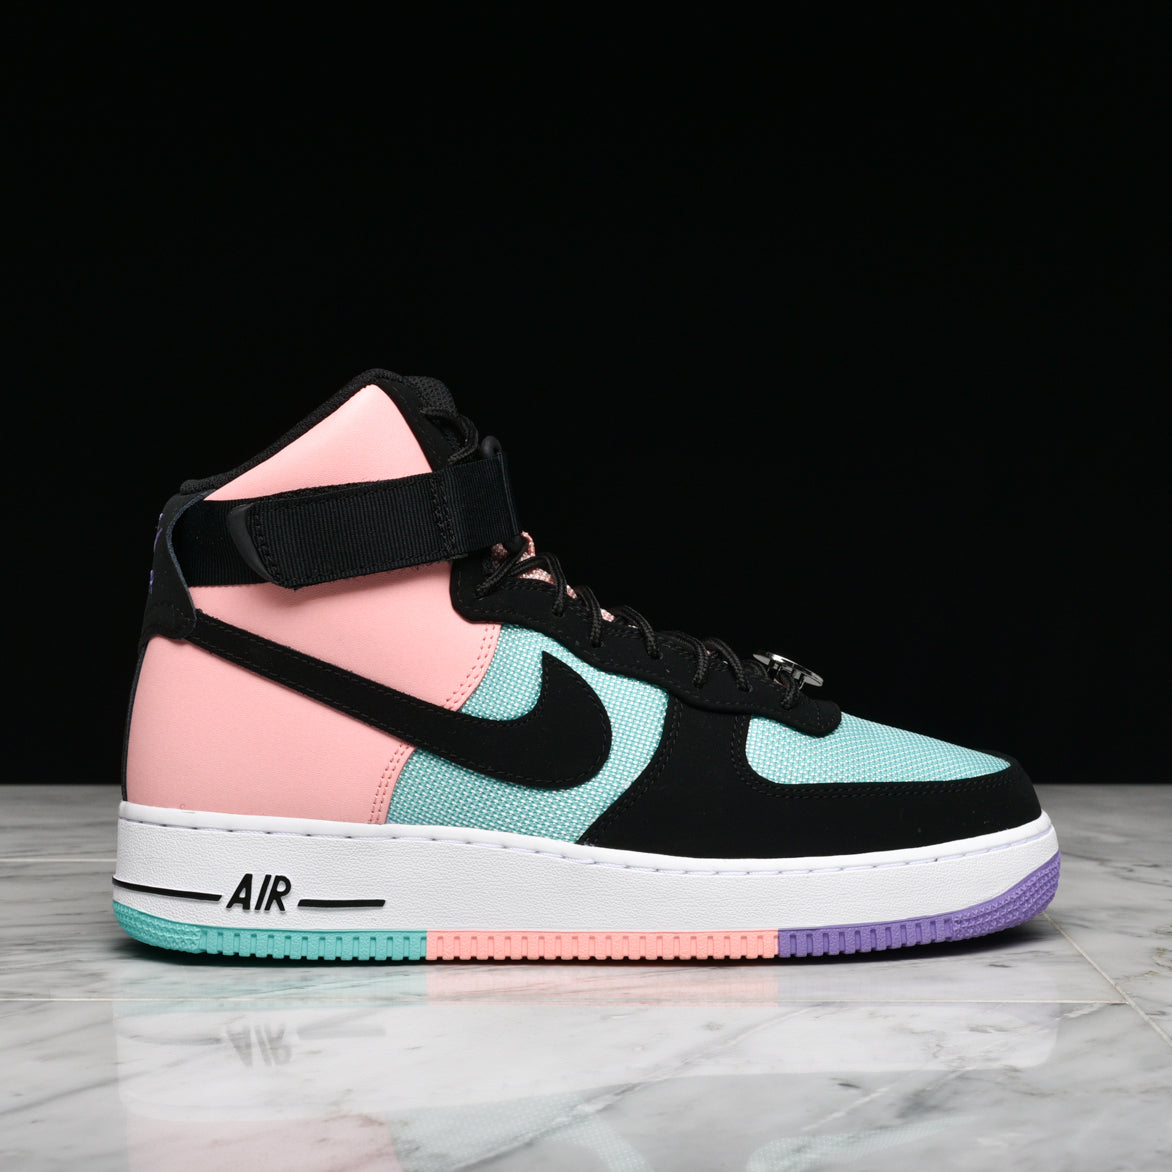 brand new 51d81 0a1d9 AIR FORCE 1 HIGH 07 LV8